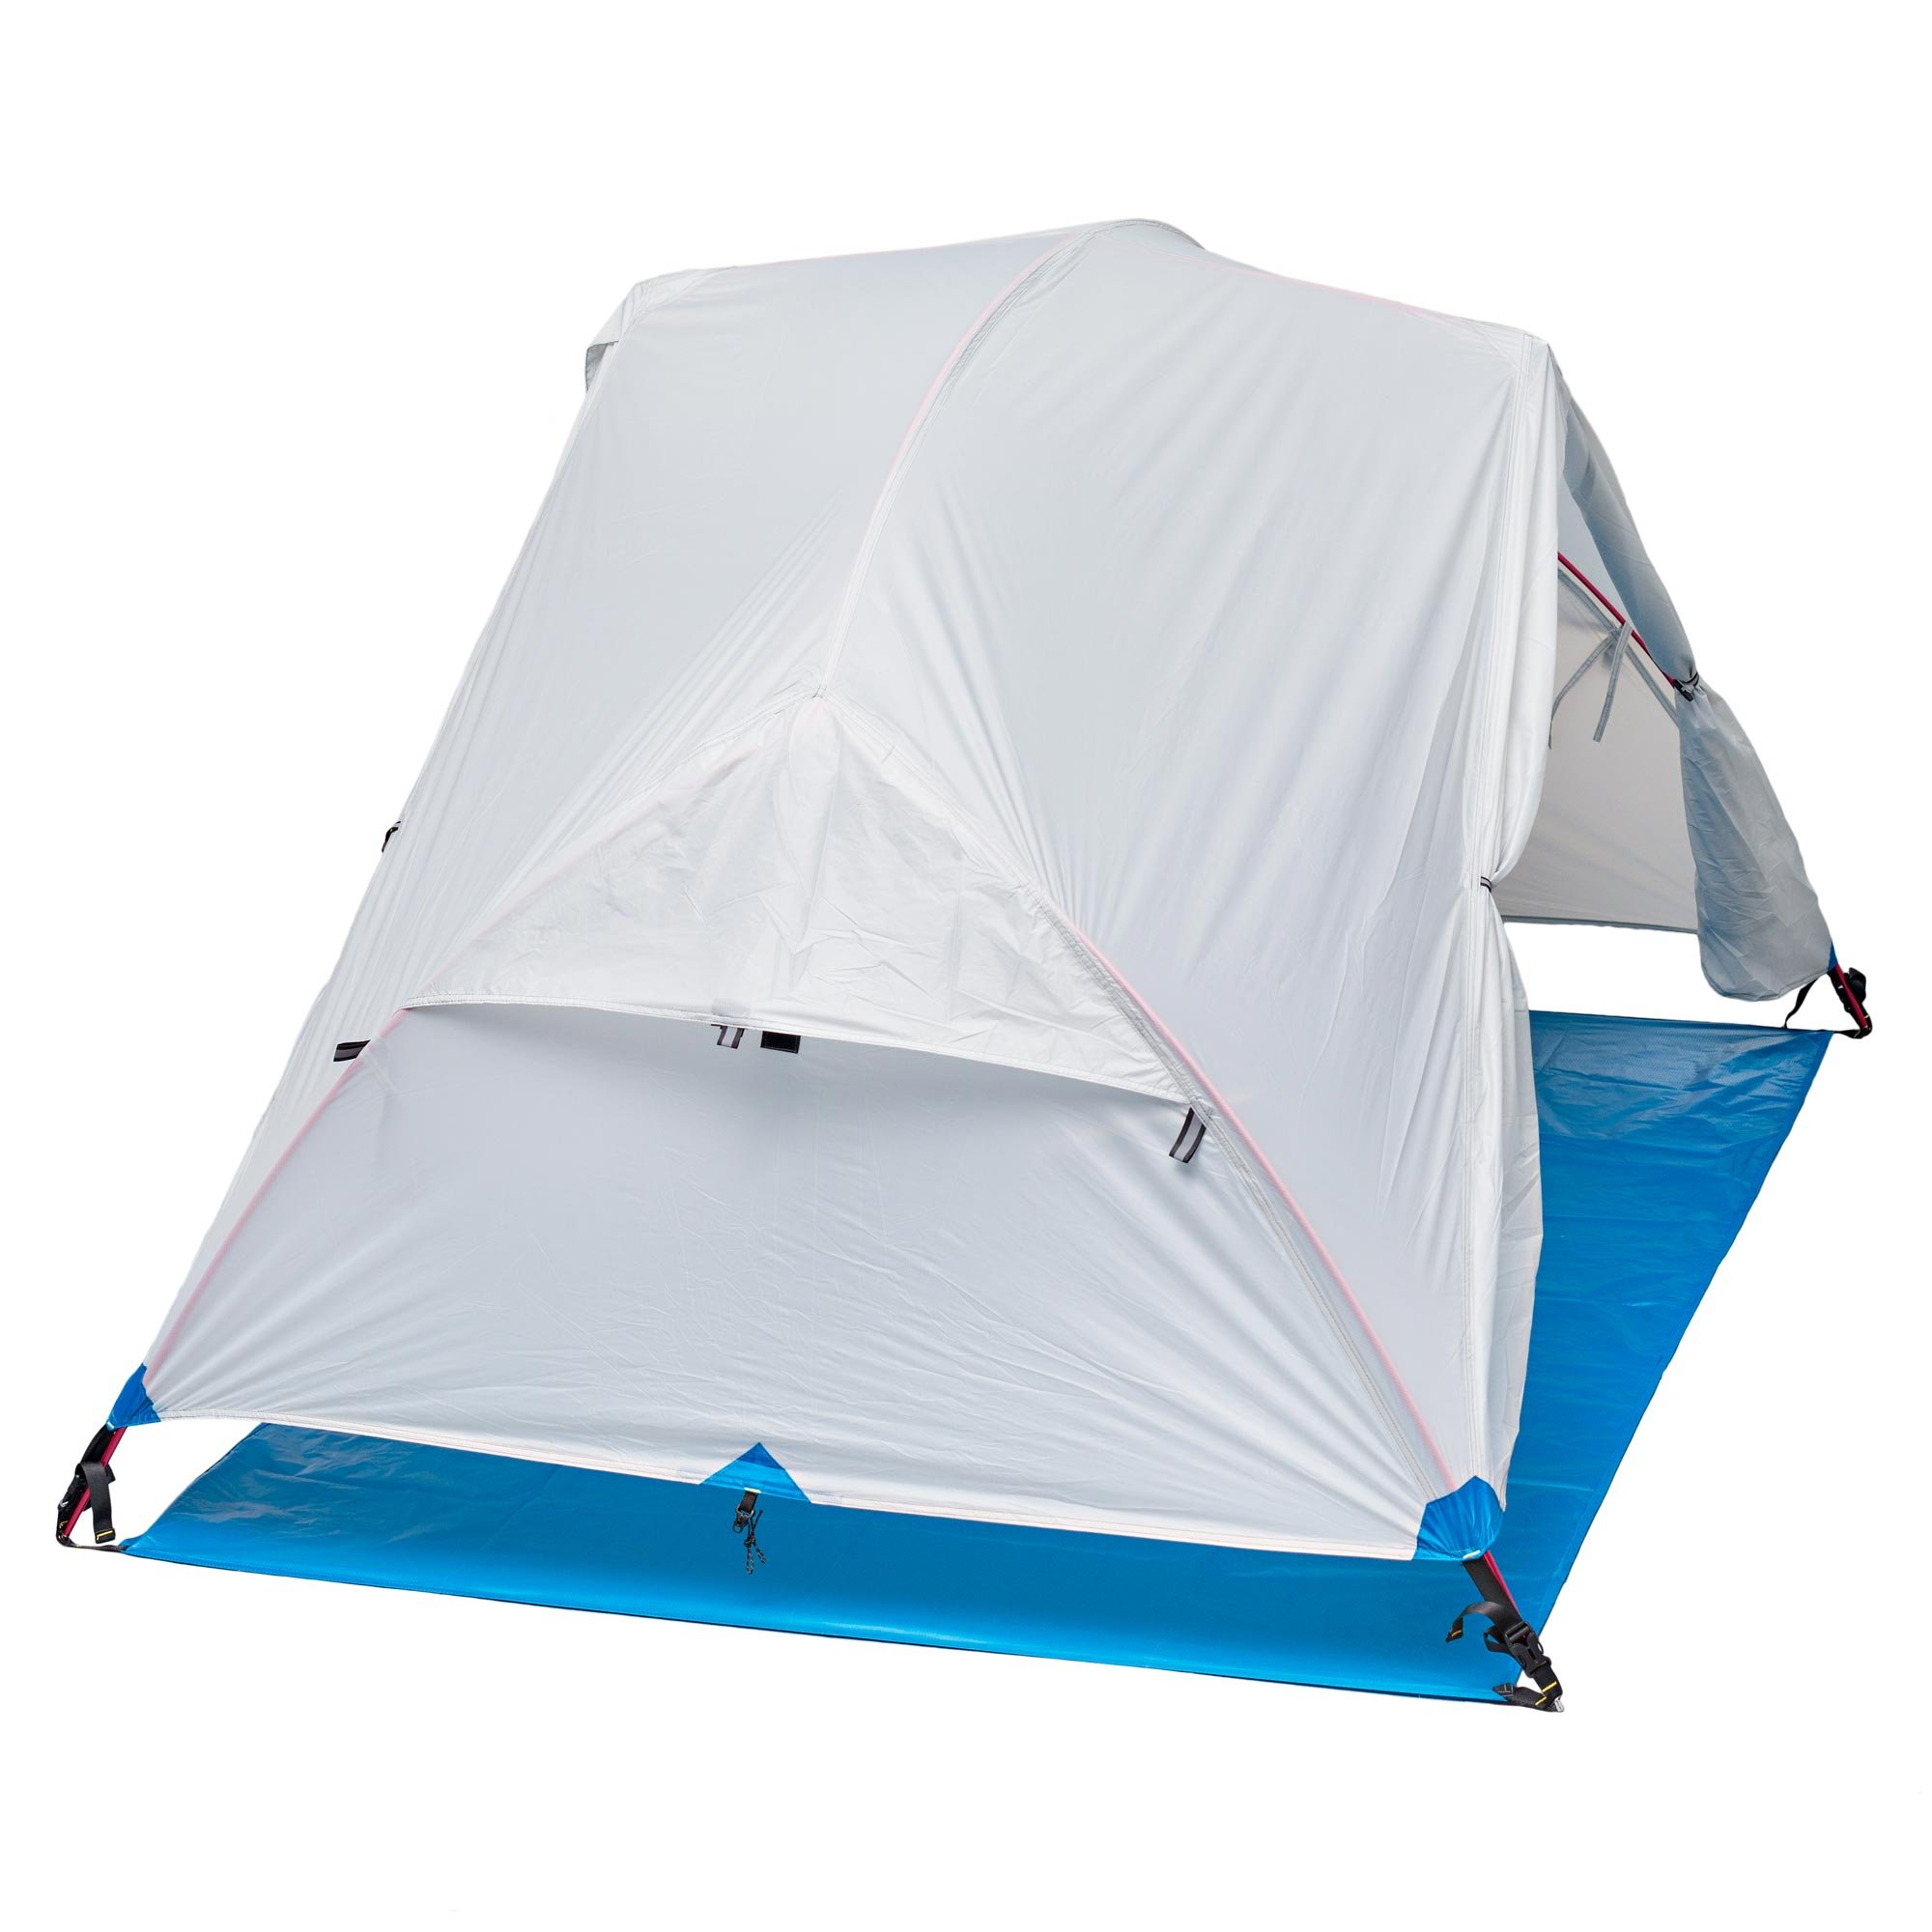 Zion 2P Two Person Lightweight Tent and Footprint - Perfect for Backpacking, Kayaking, Camping and Bikepacking by Paria Outdoor Products (Image #6)